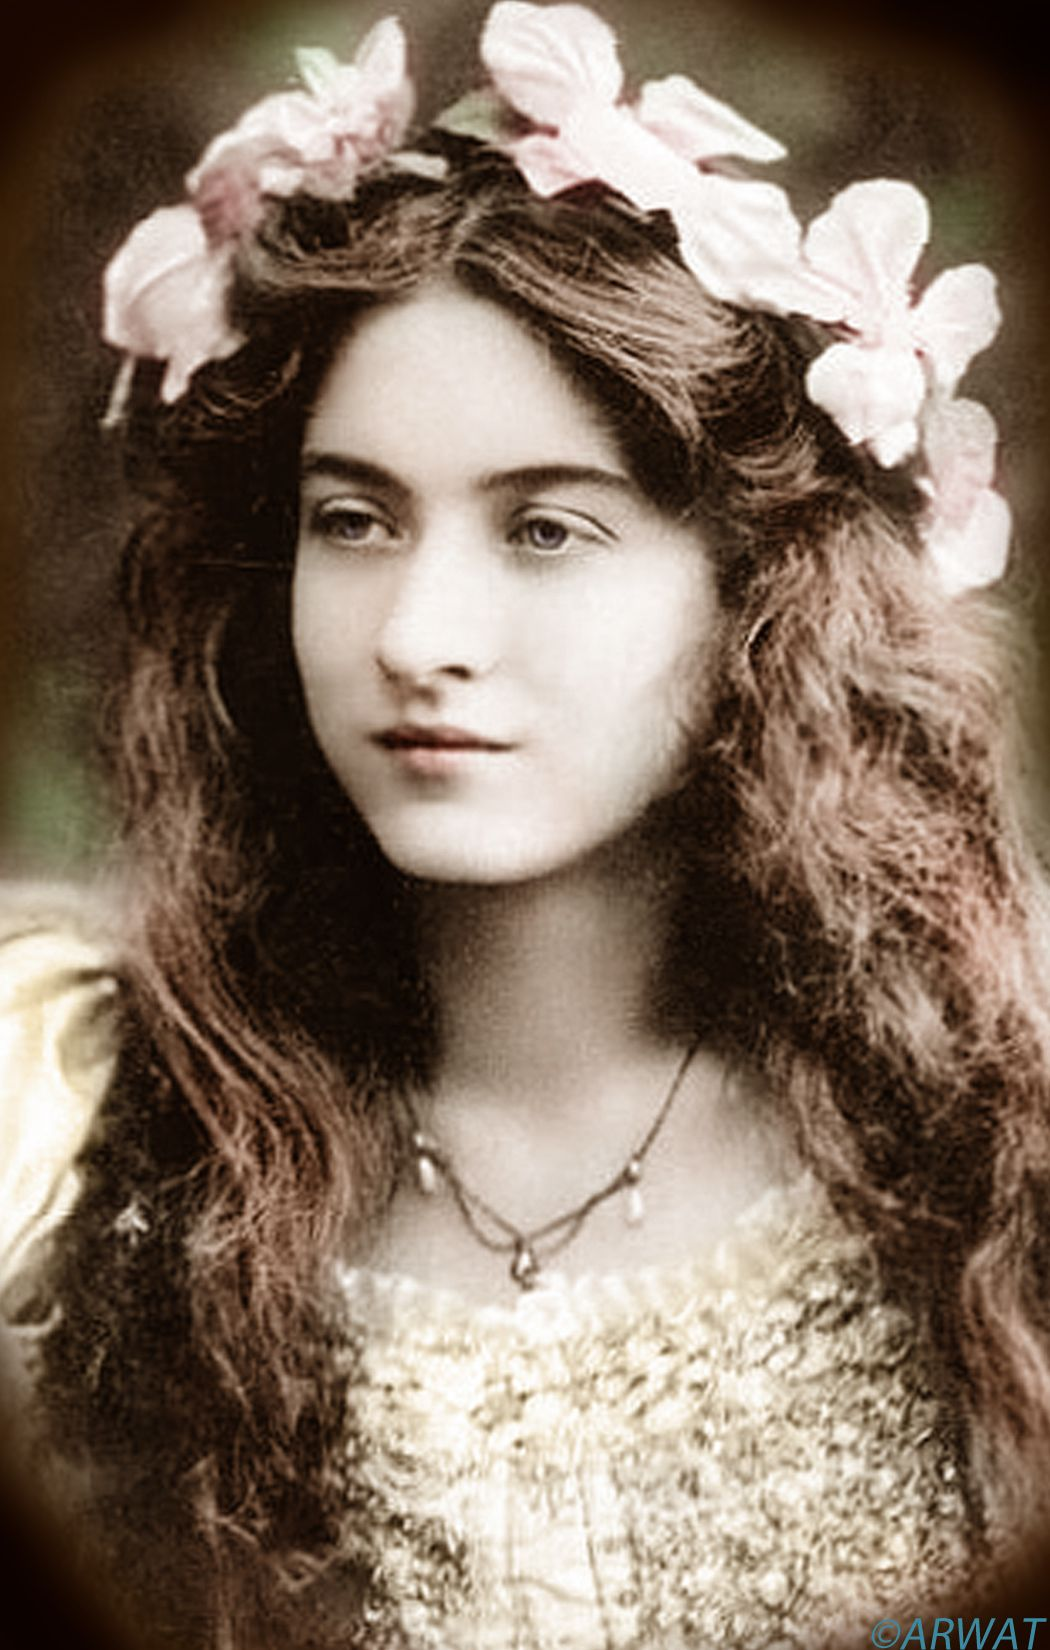 maude fealy was an american stage and film actress who appeared in maude fealy was an american stage and film actress who appeared in nearly every film made